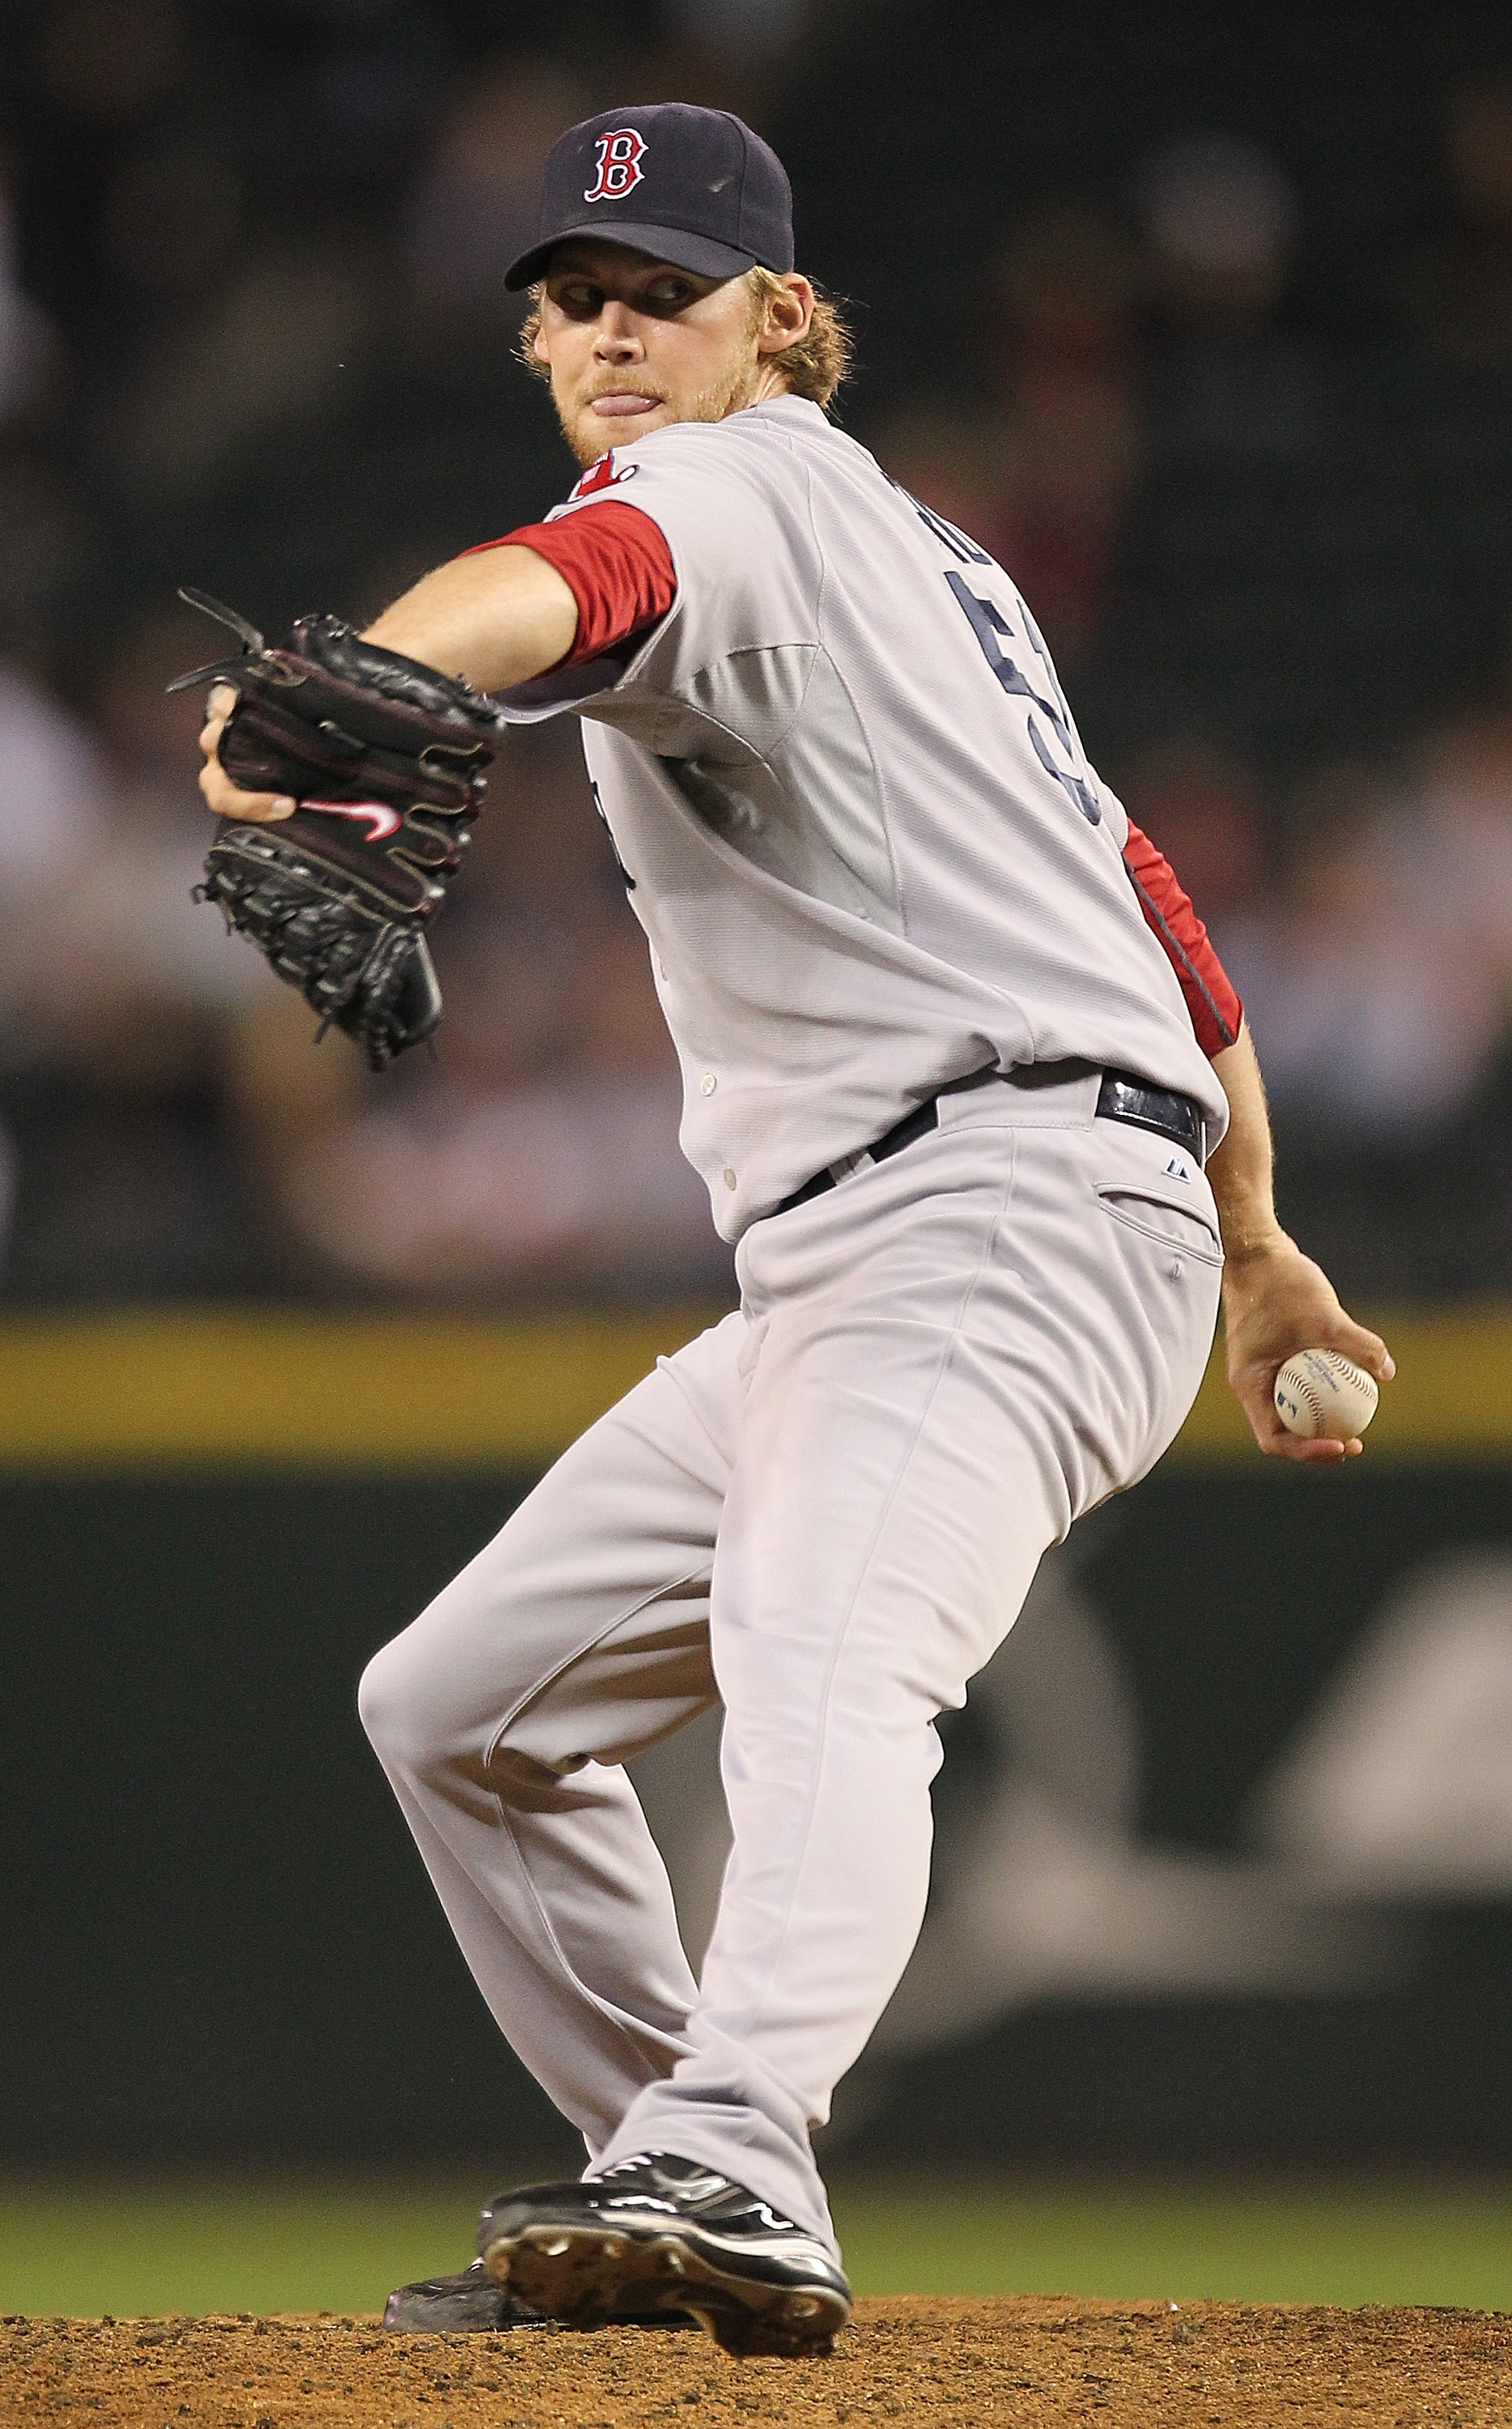 SEATTLE - SEPTEMBER 13:  Daniel Bard #51 of the Boston Red Sox pitches in the ninth inning against the Seattle Mariners at Safeco Field on September 13, 2010 in Seattle, Washington. The Red Sox defeated the Mariners 5-1. (Photo by Otto Greule Jr/Getty Ima